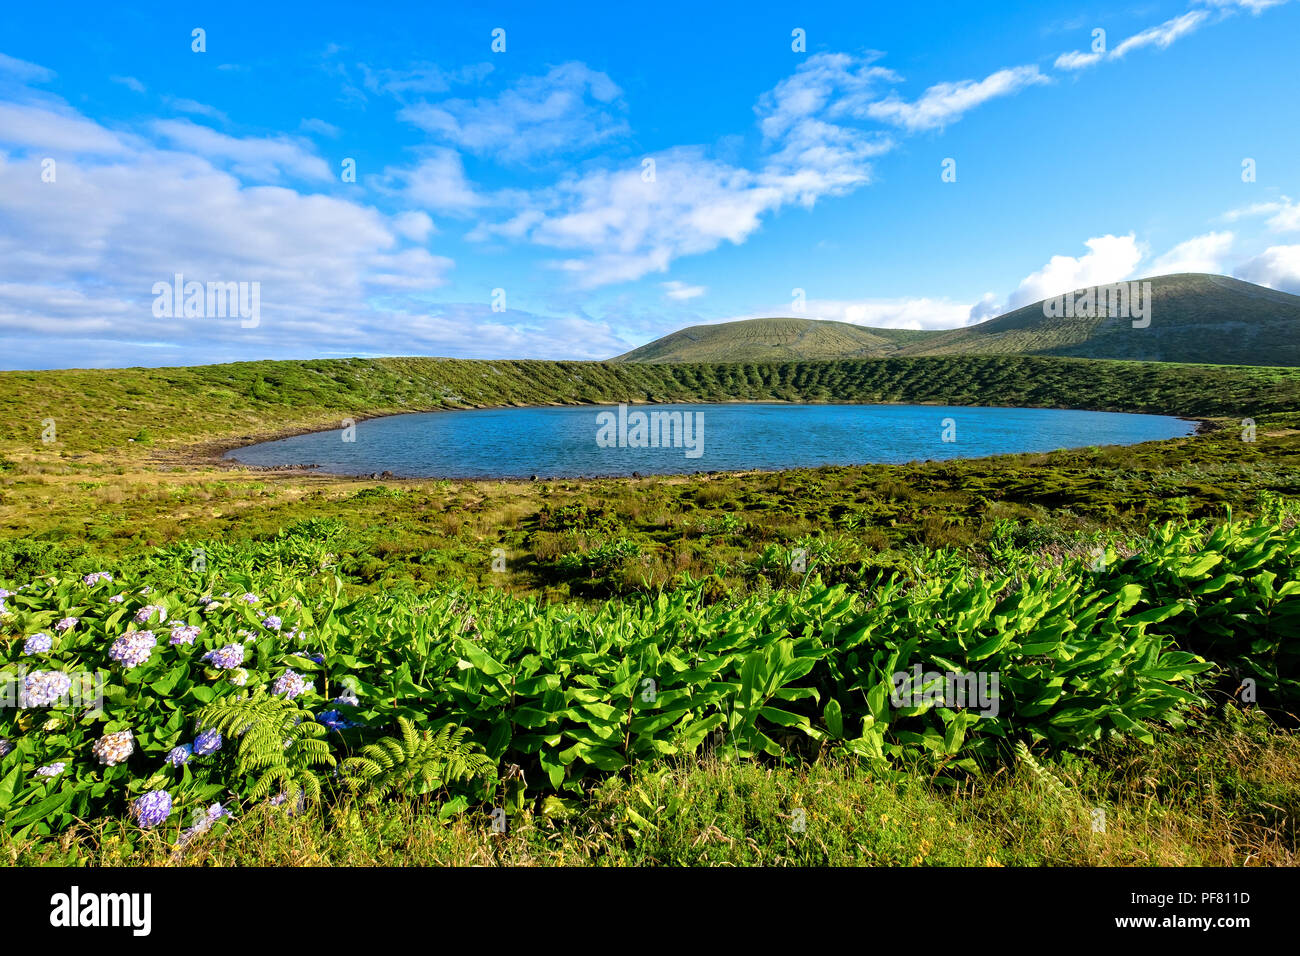 Lagoa Rasa (Plate Lake) - Azores Islands Stock Photo